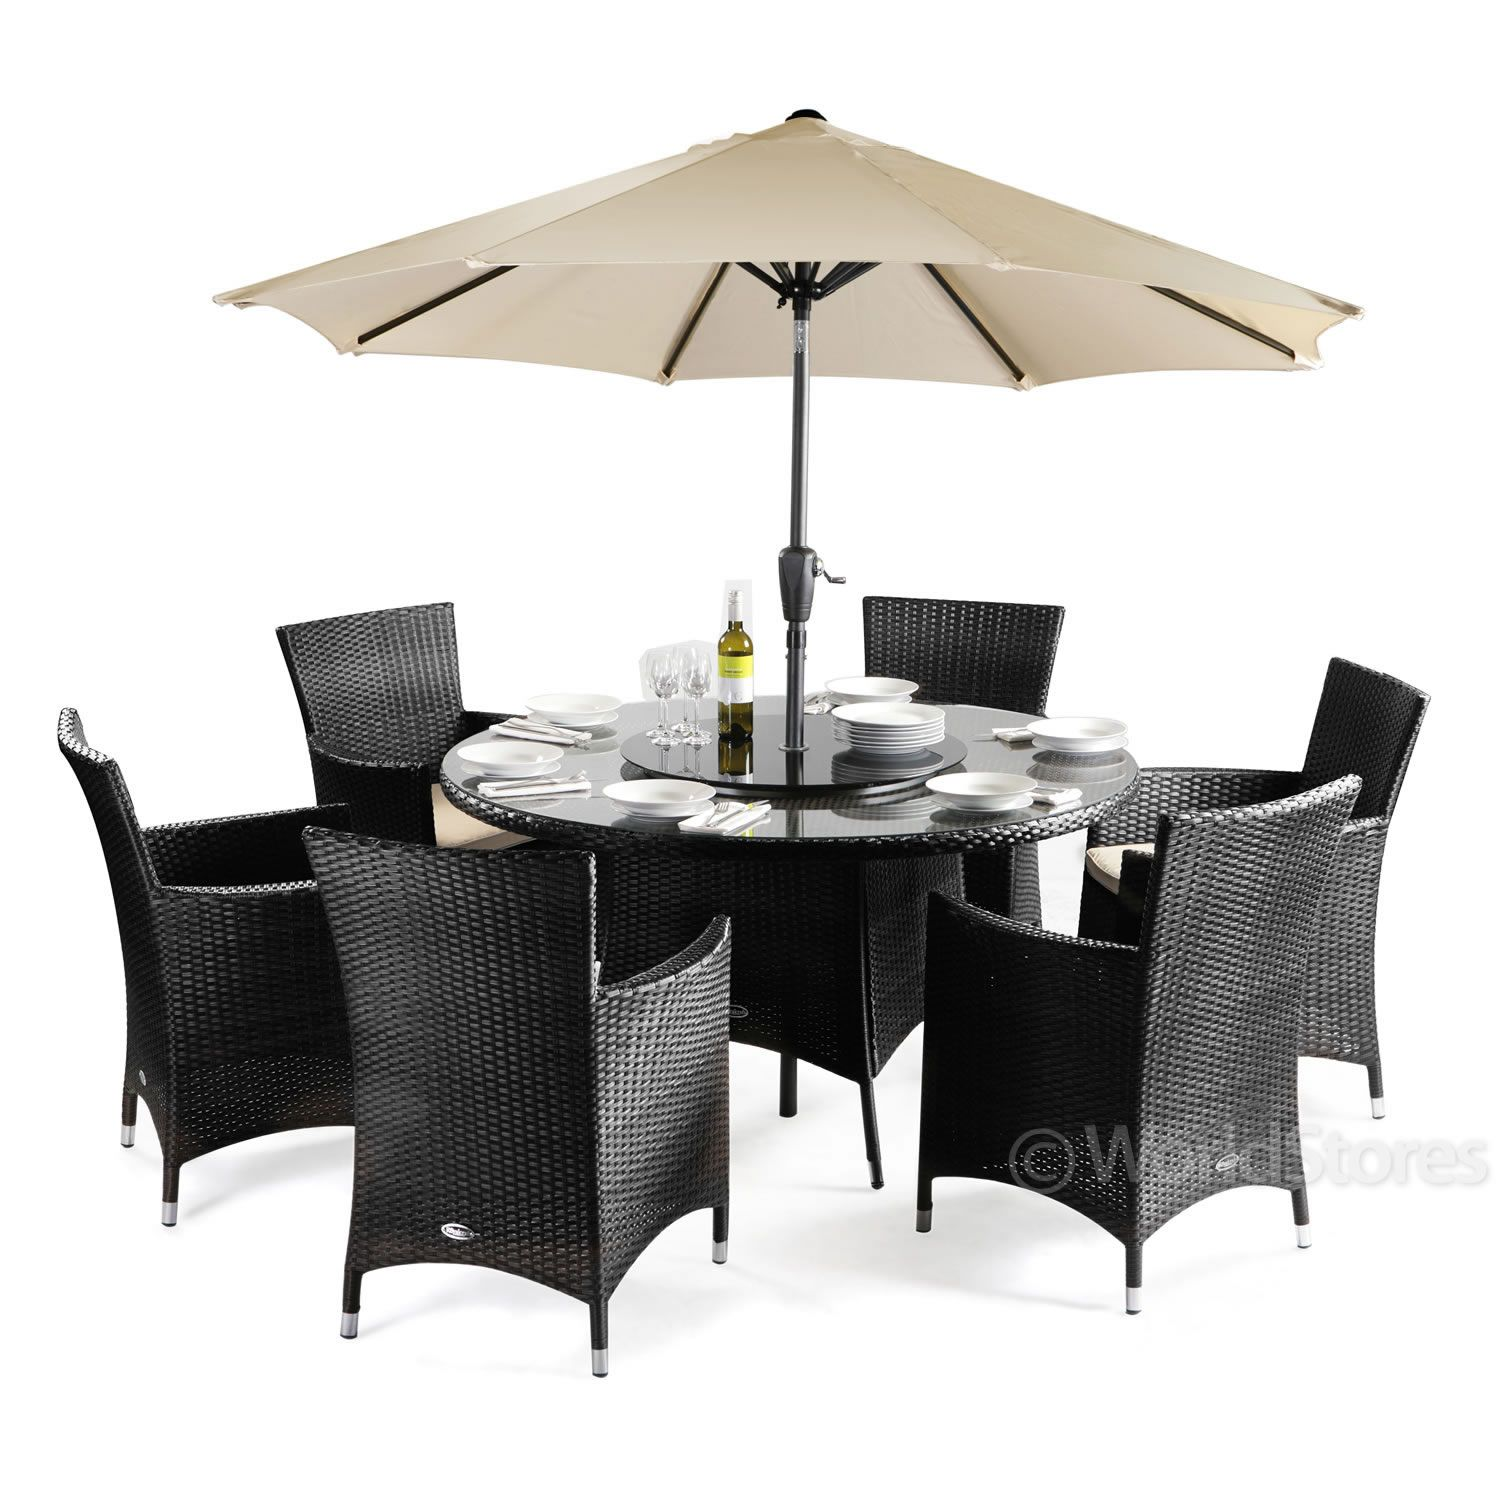 Bon Cannes Rattan Round 6 Seater Dining Set U2013 Next Day Delivery Cannes Rattan  Round 6 Seater Dining Set From WorldStores: Everything For The Home